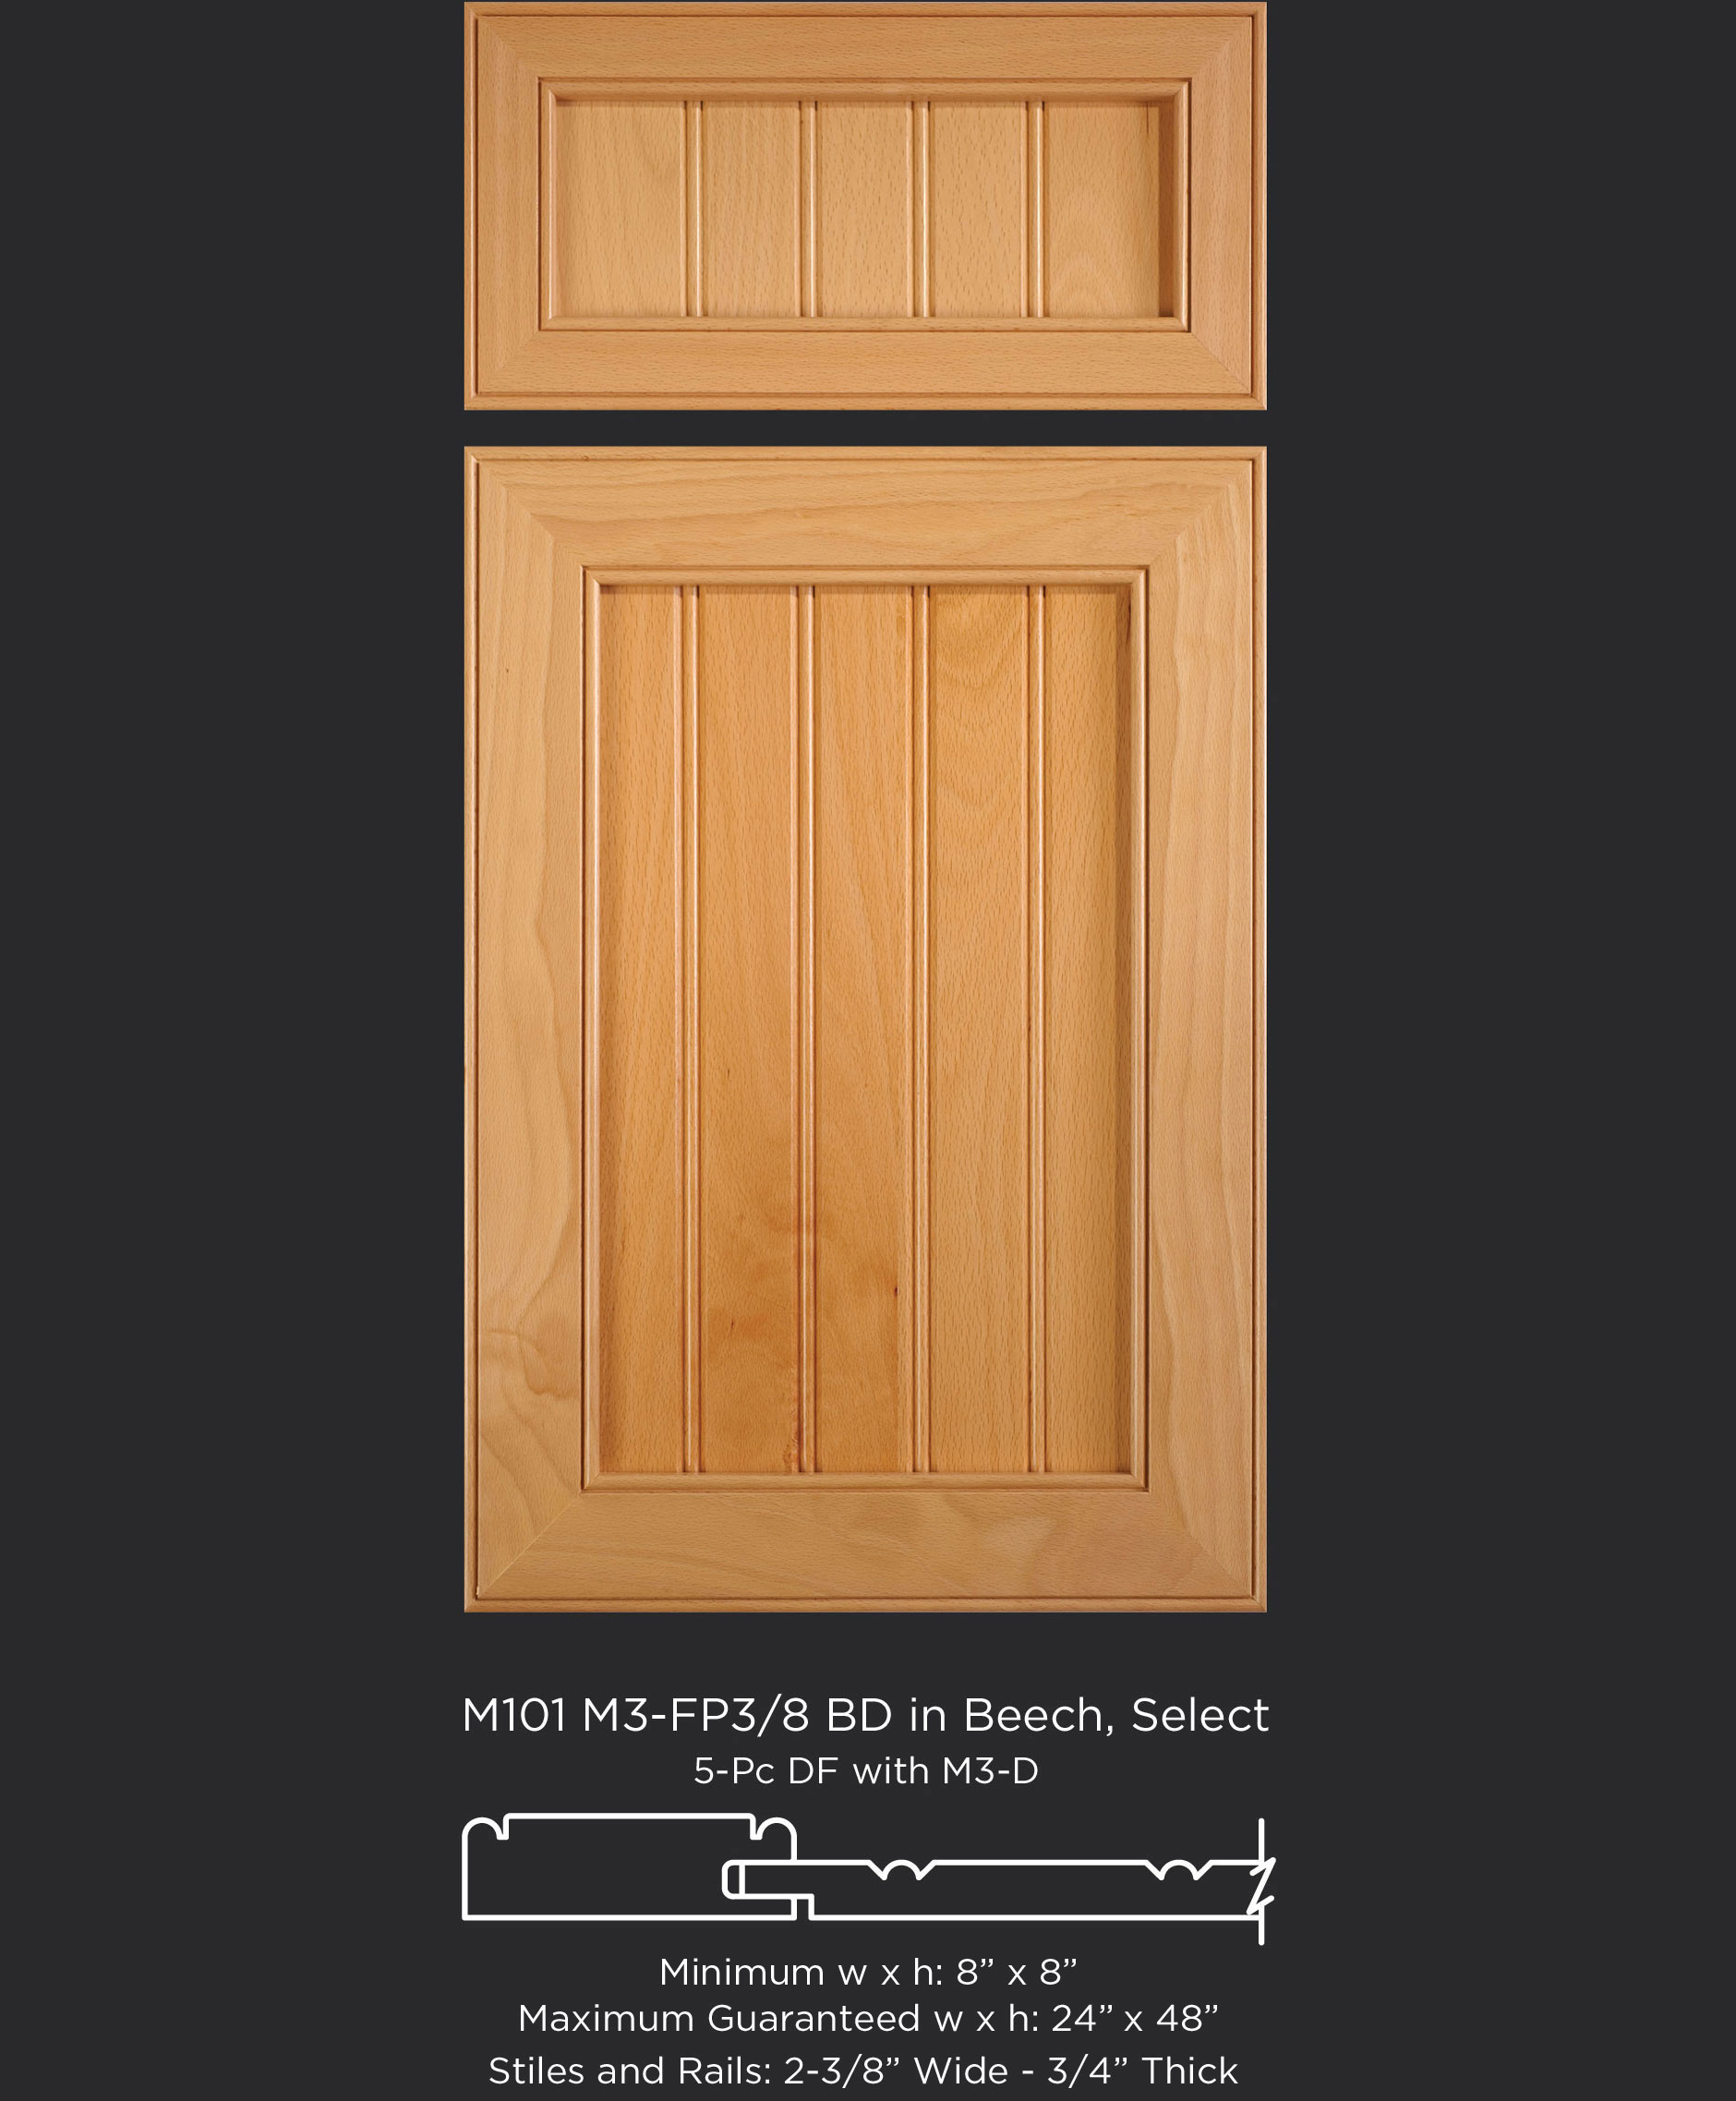 Mitered Cabinet Door M101 M3-FP3/8 BD Beech, Select and 5-pc drawer front with M3-D